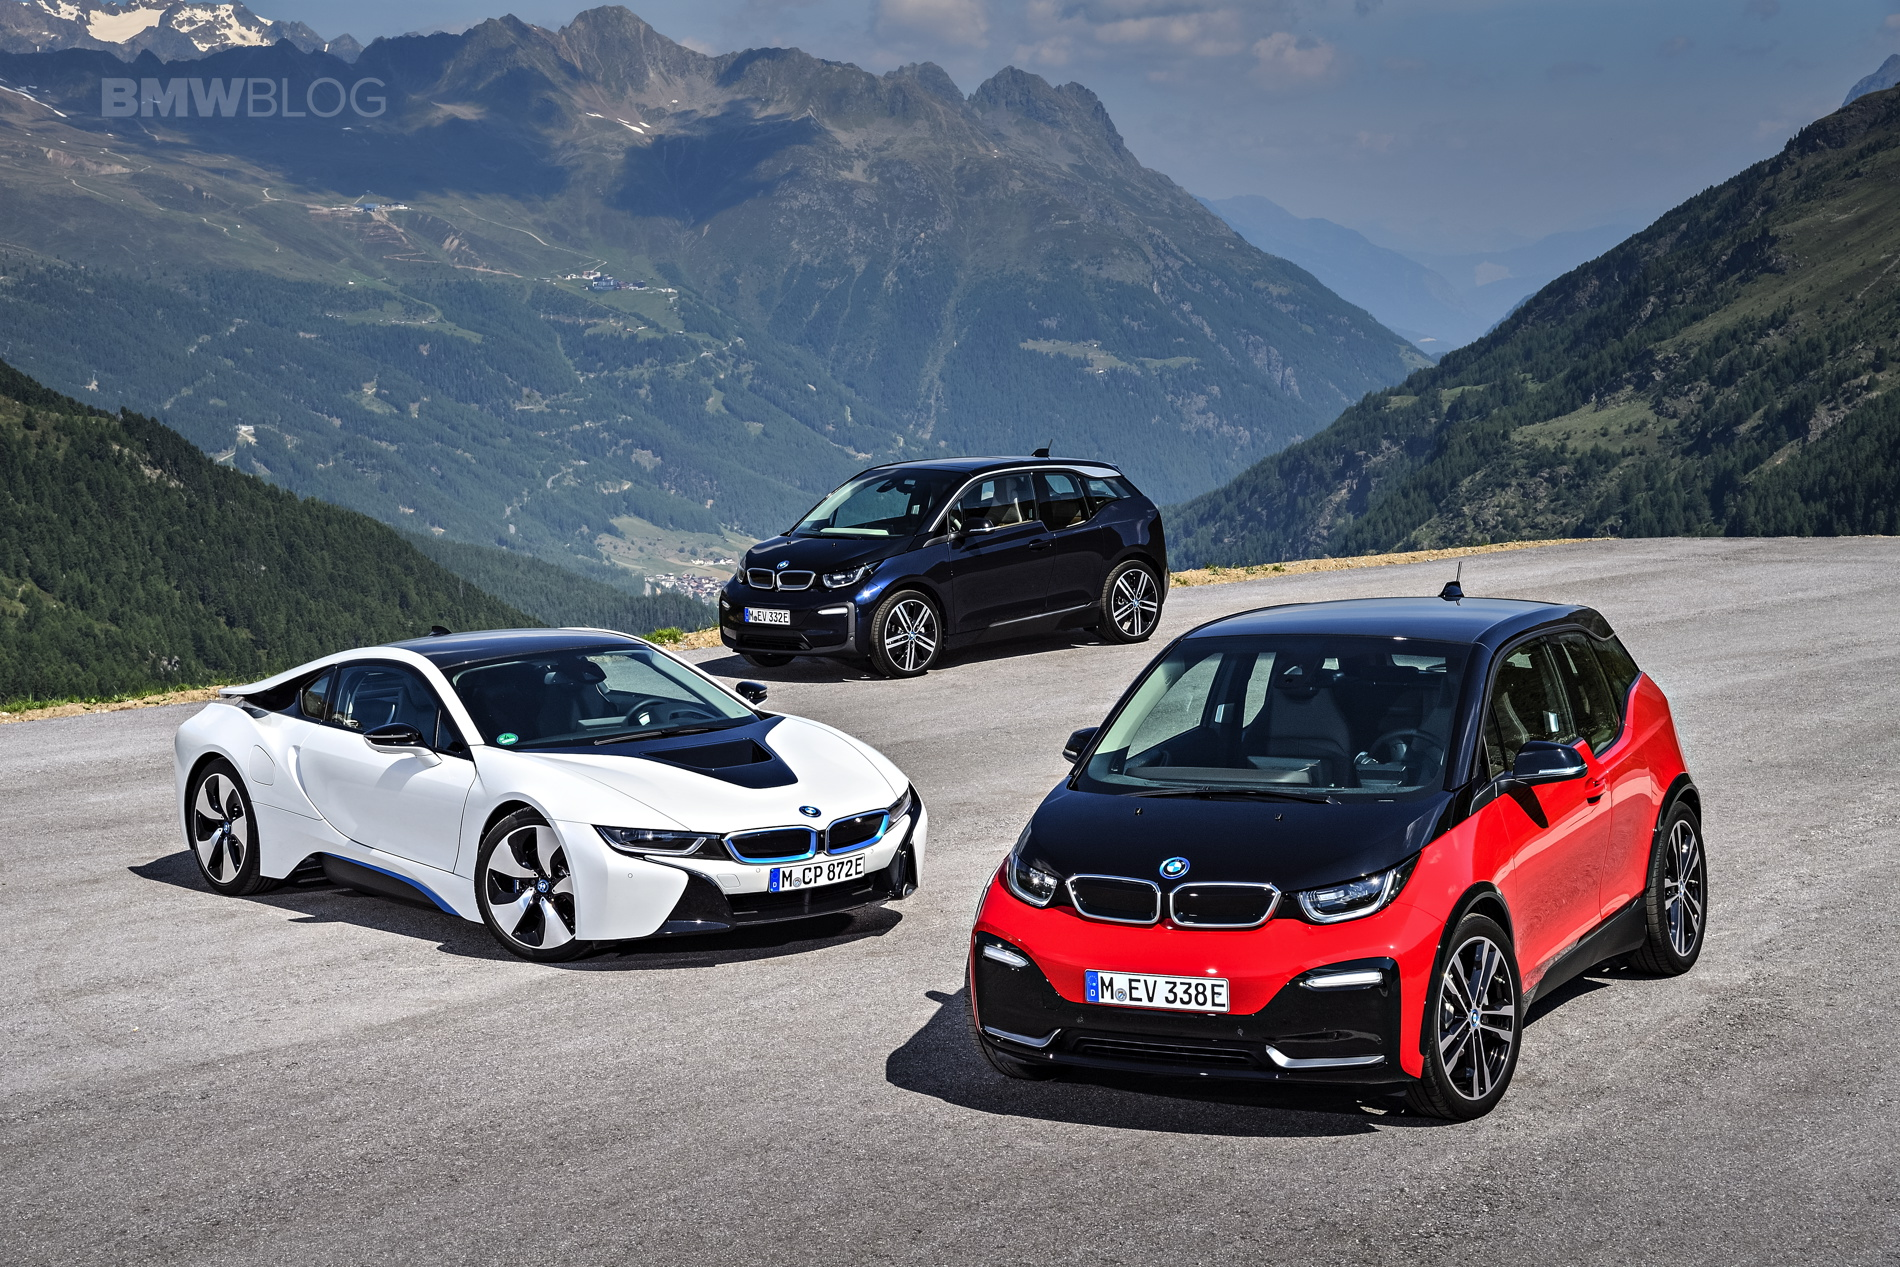 Family Photo: BMW i3 Facelift, i3s and i8 hybrid